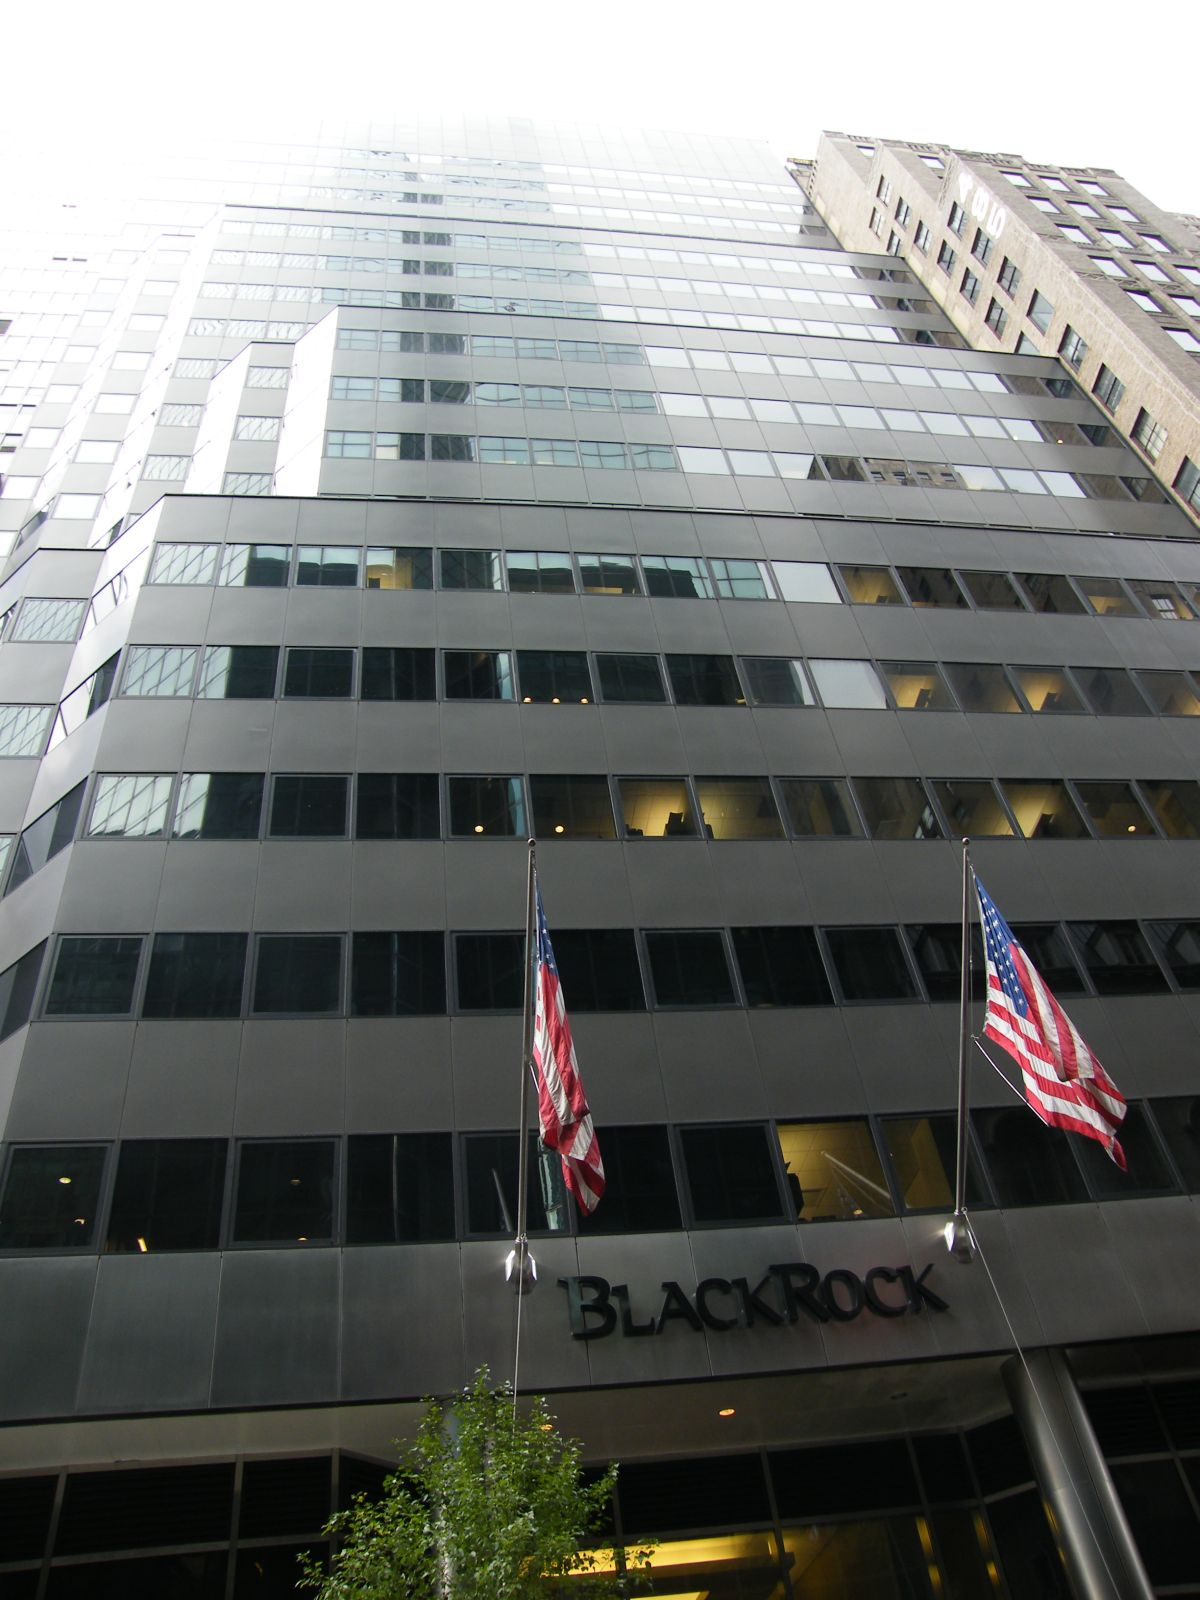 BlackRock - Wikipedia